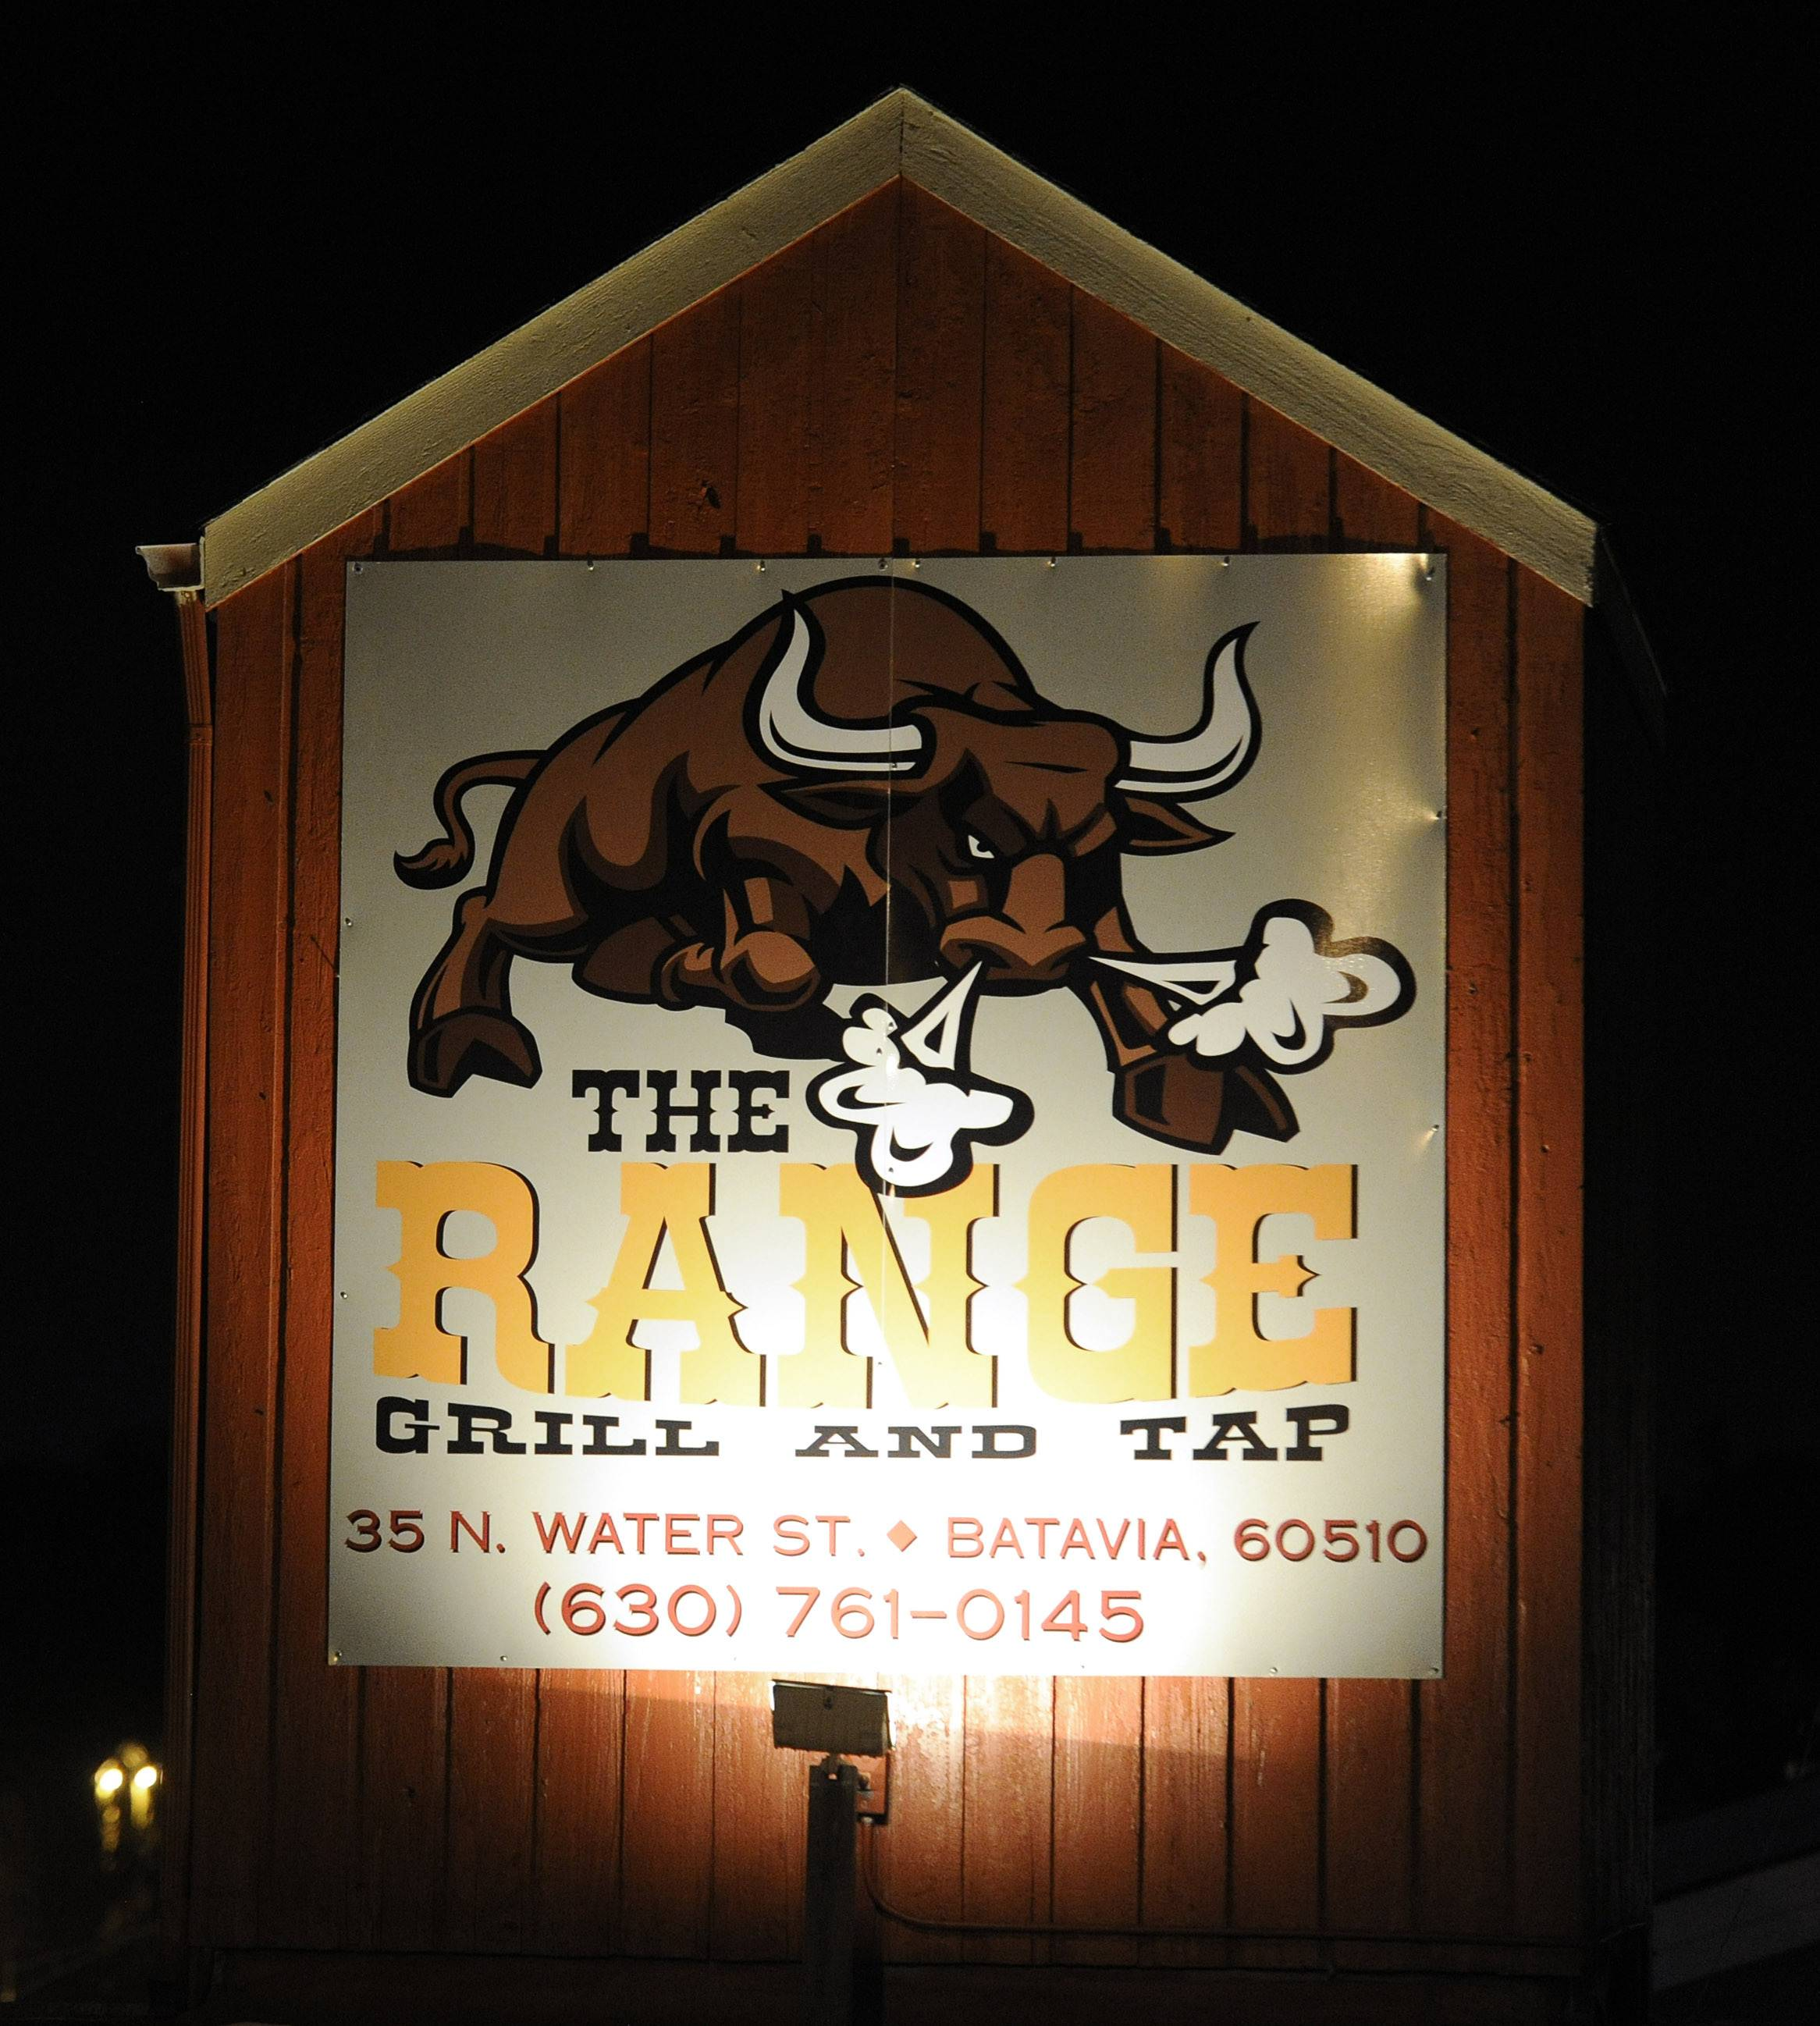 Rustic decor fits the name at The Range Grill & Tap.